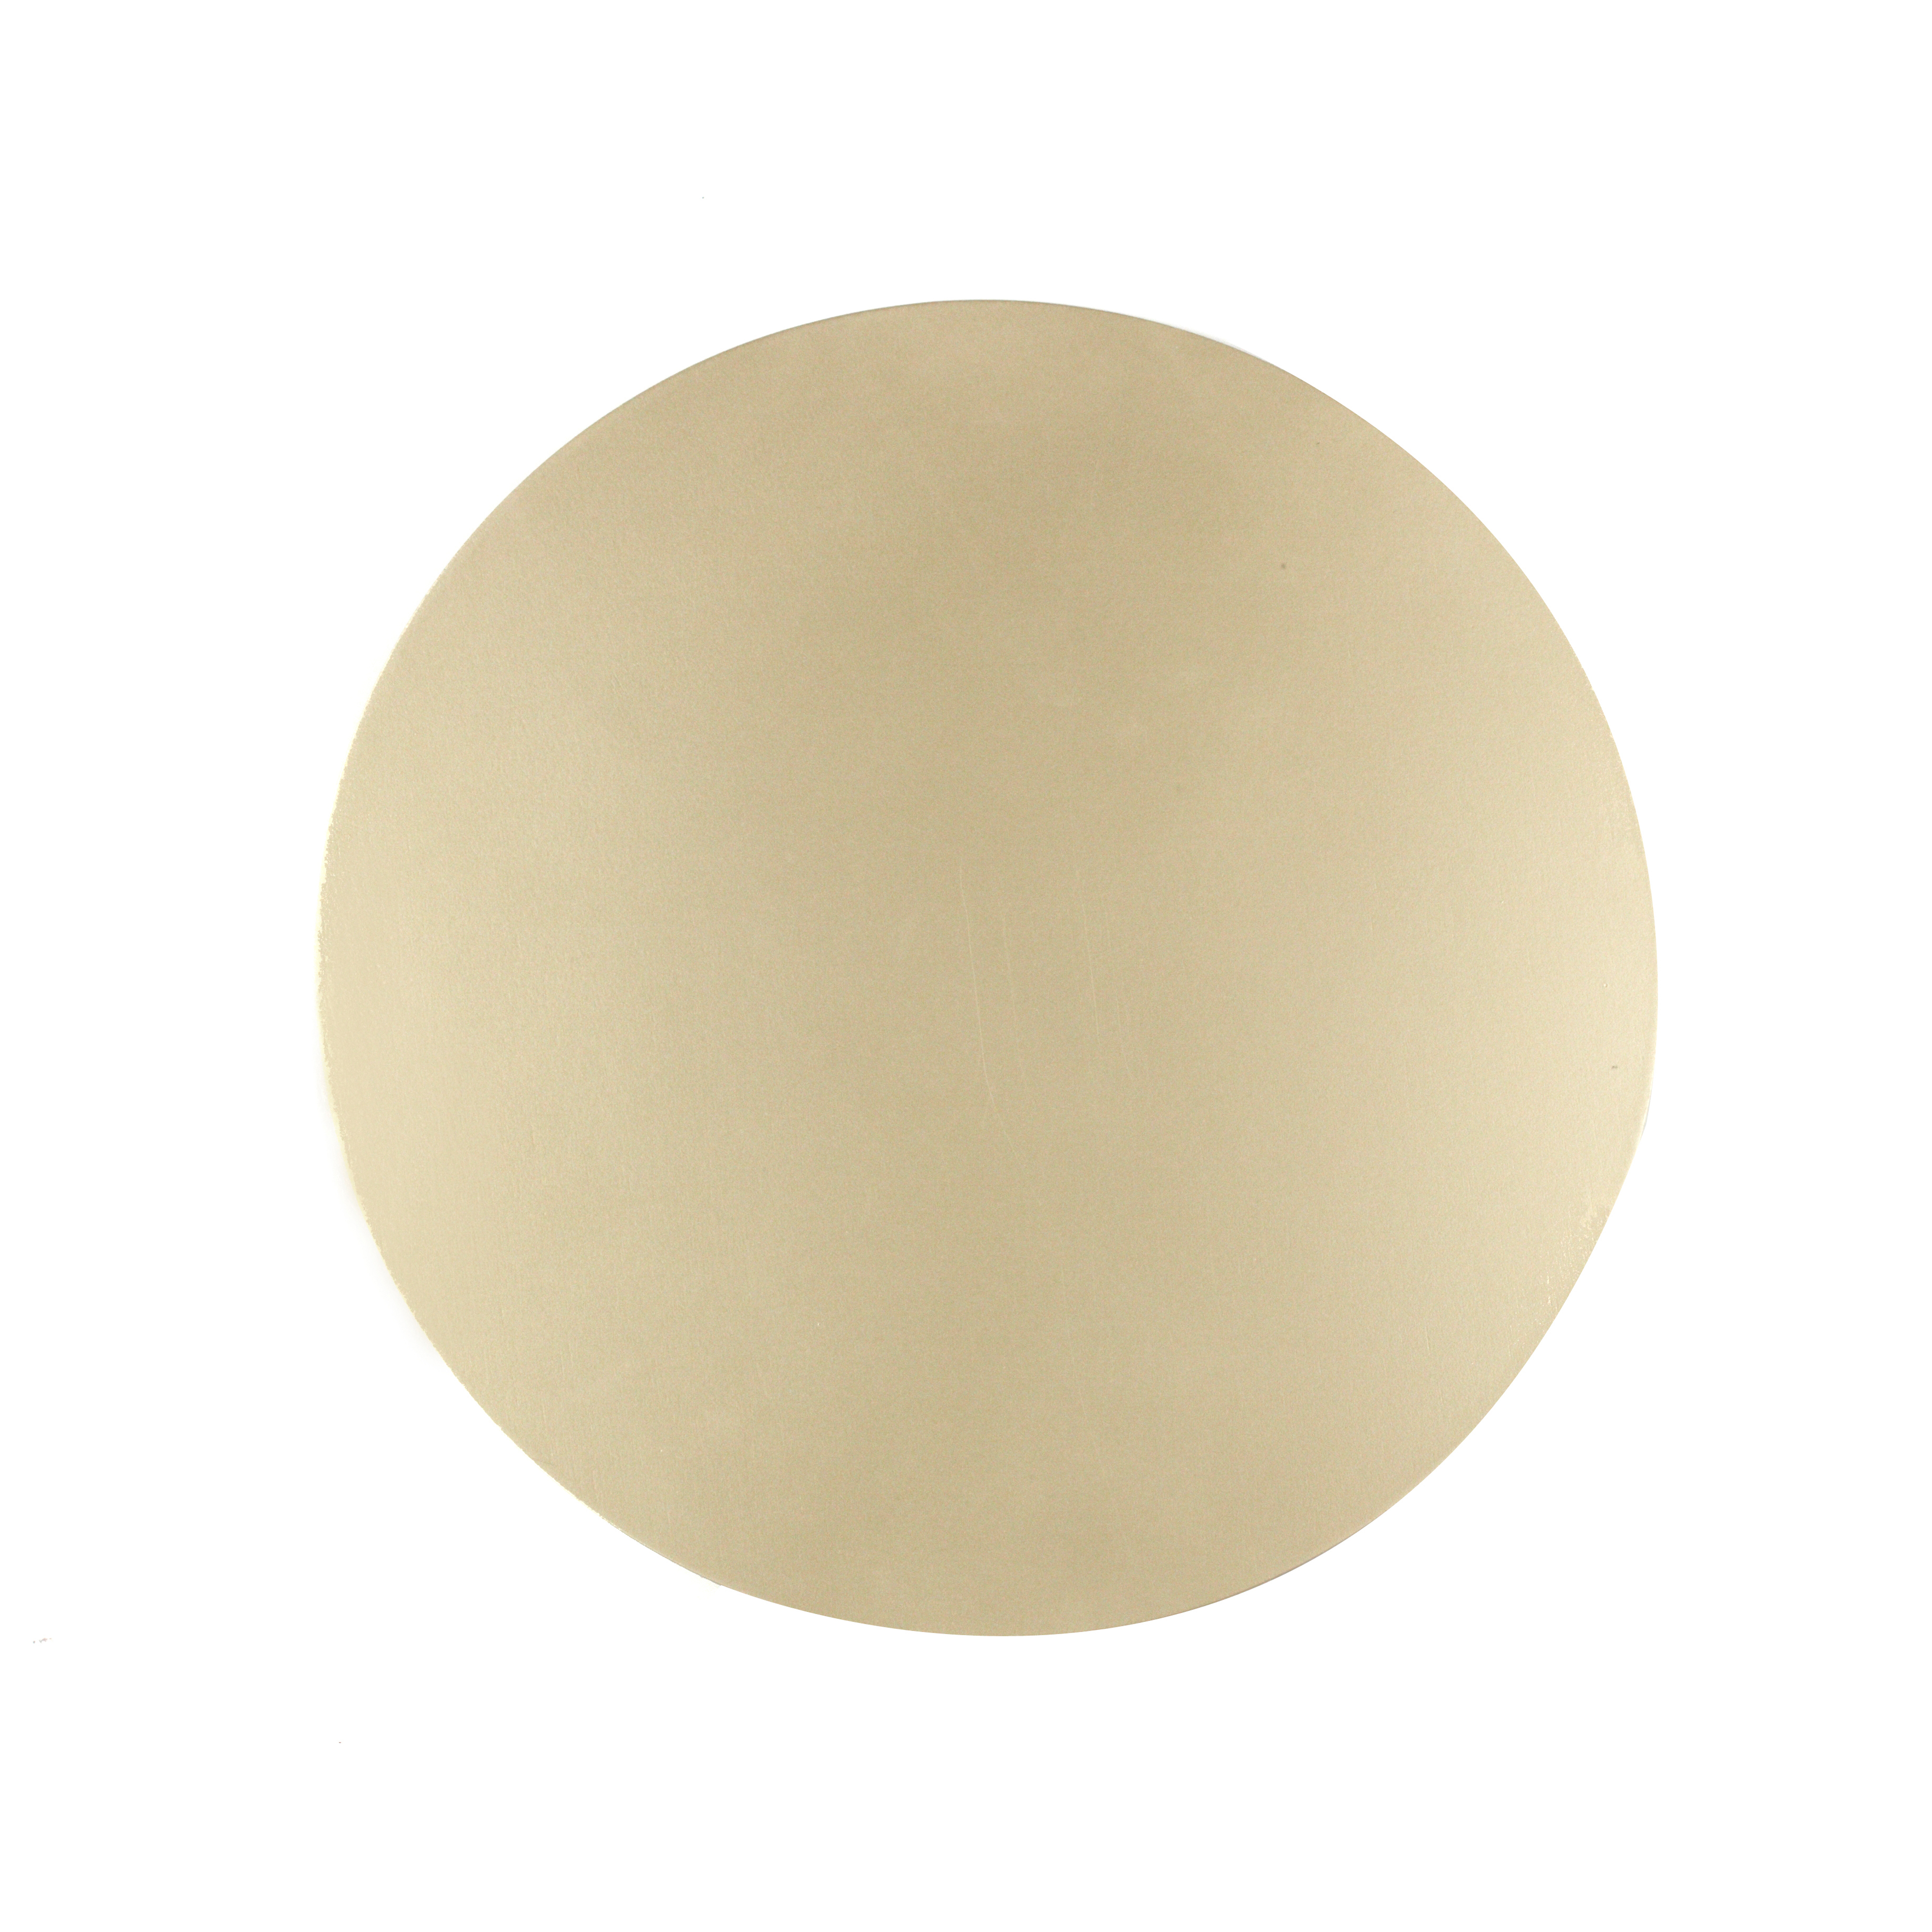 Inspire Luxury Shimmer Metallic Round Placemat 29cm Mdf Gold Set Of 4